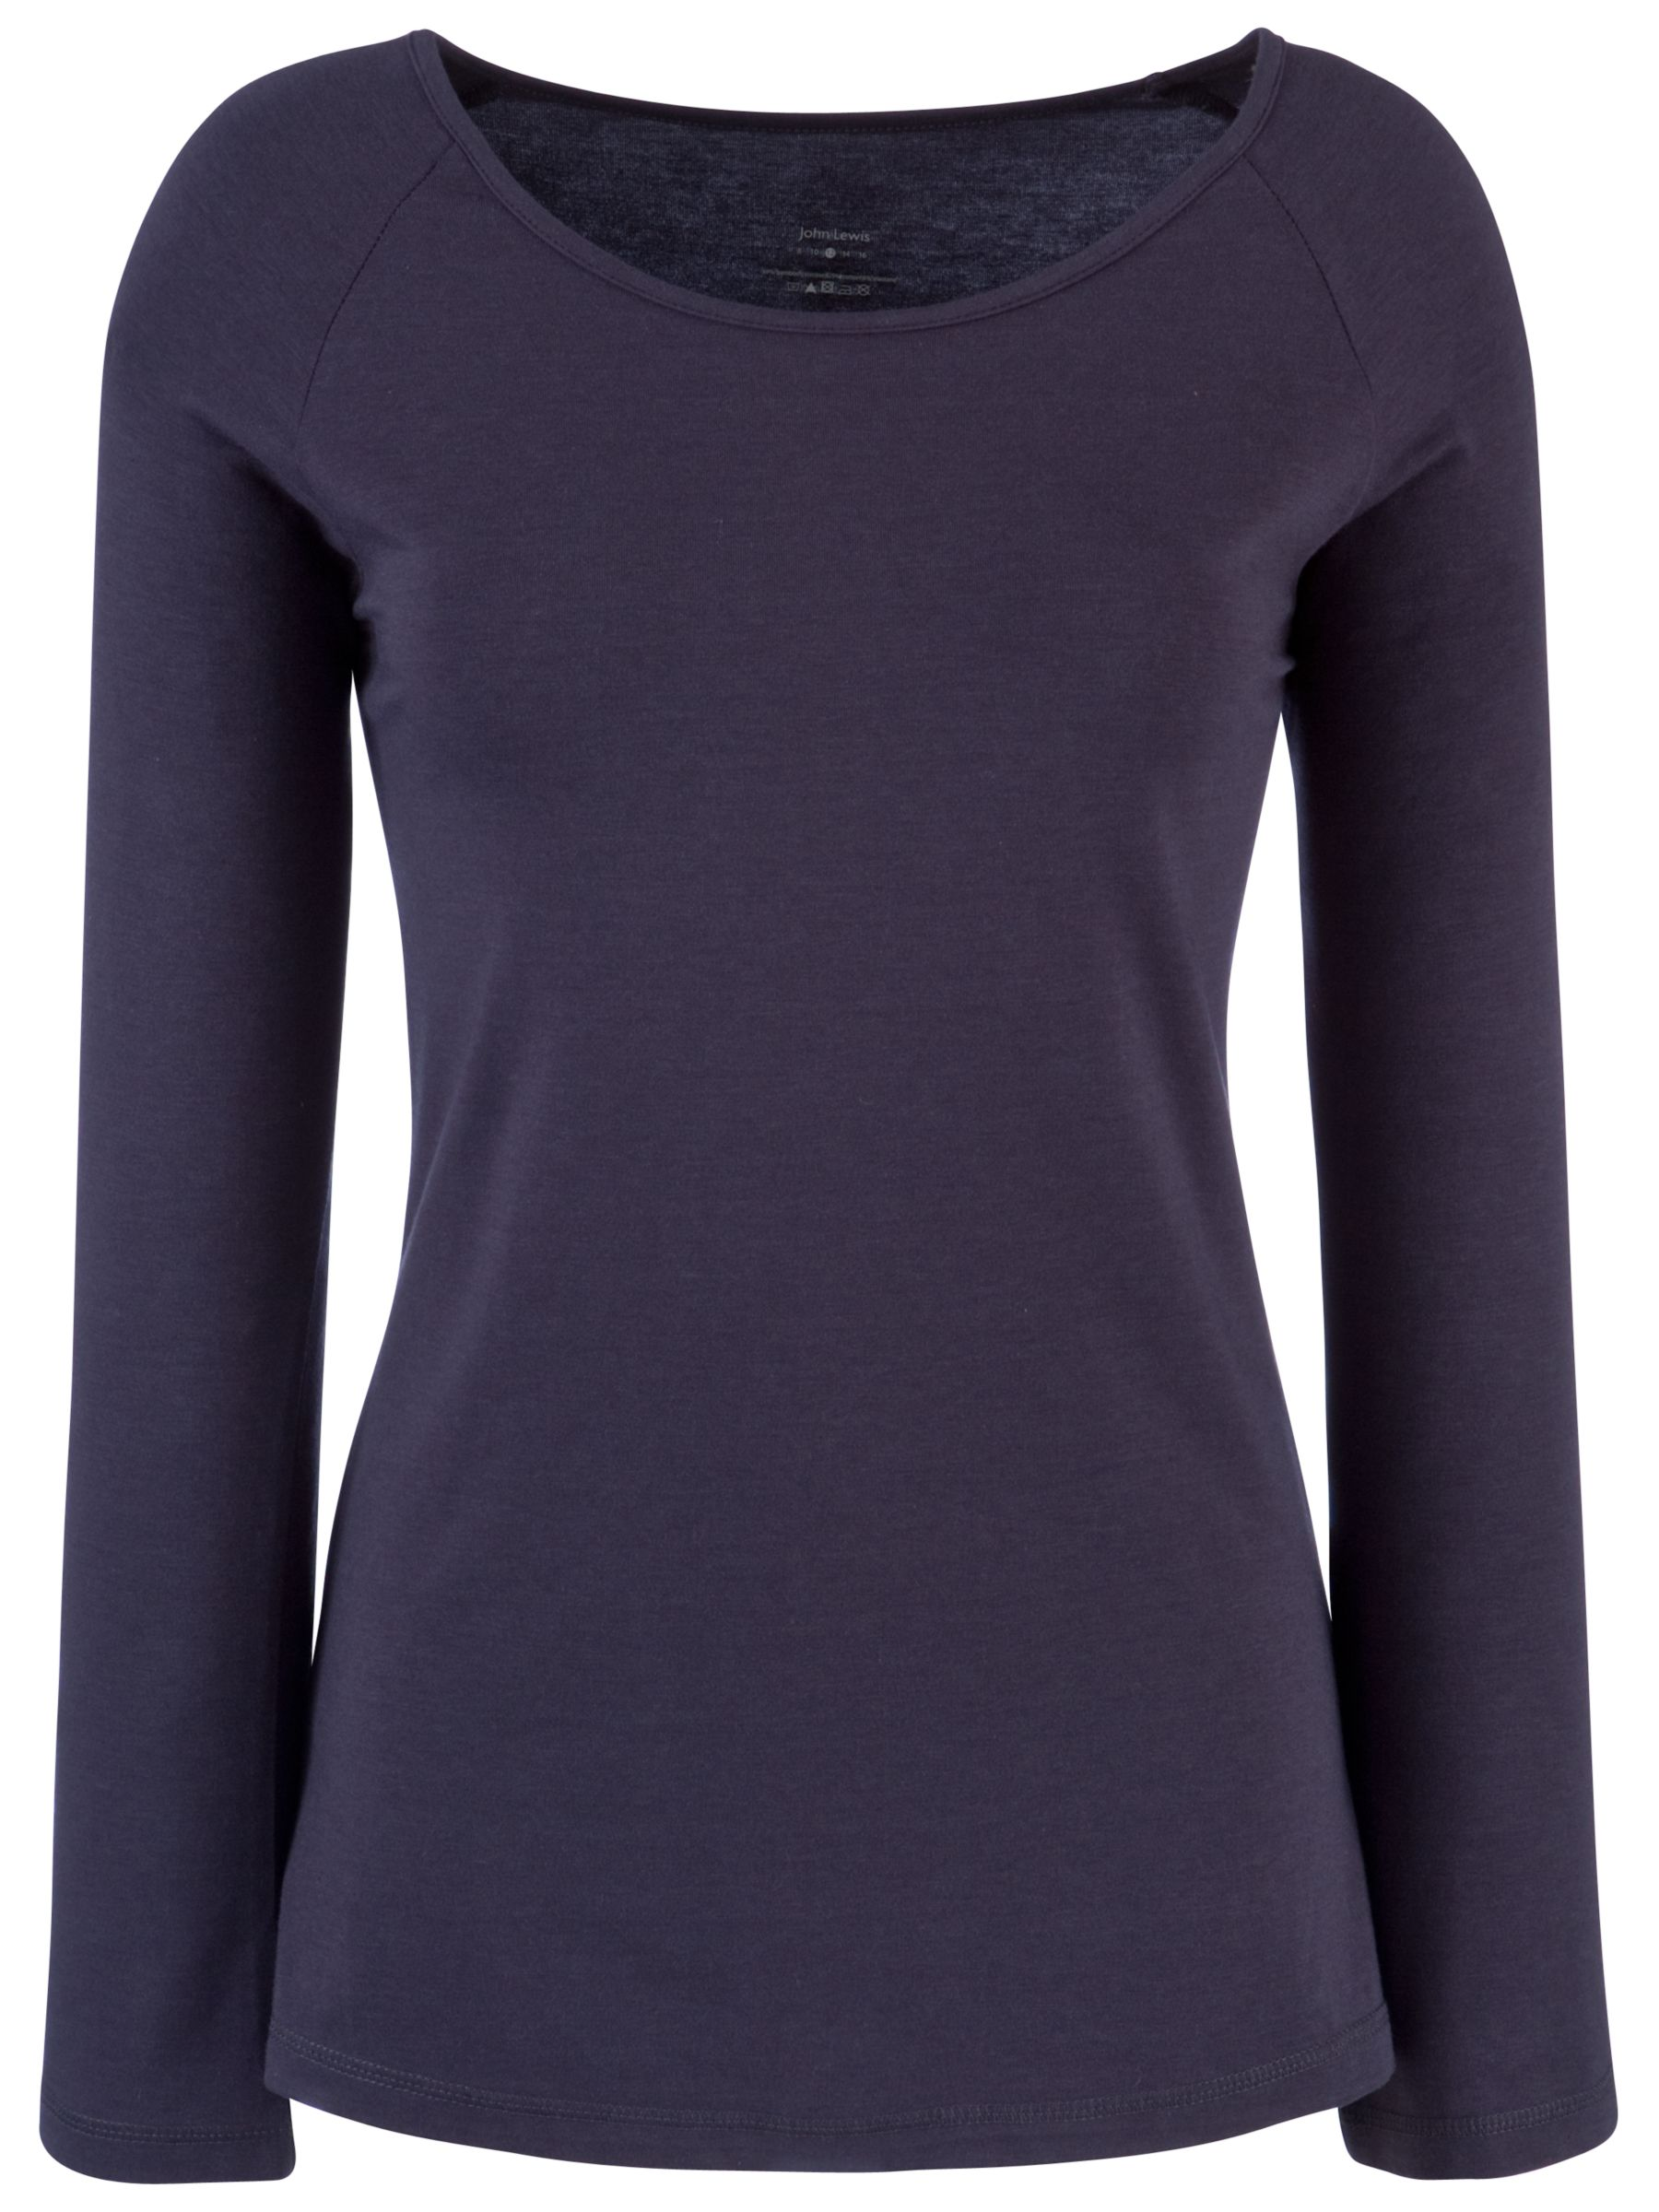 John Lewis Long Sleeve Yoga T-Shirt, Charcoal